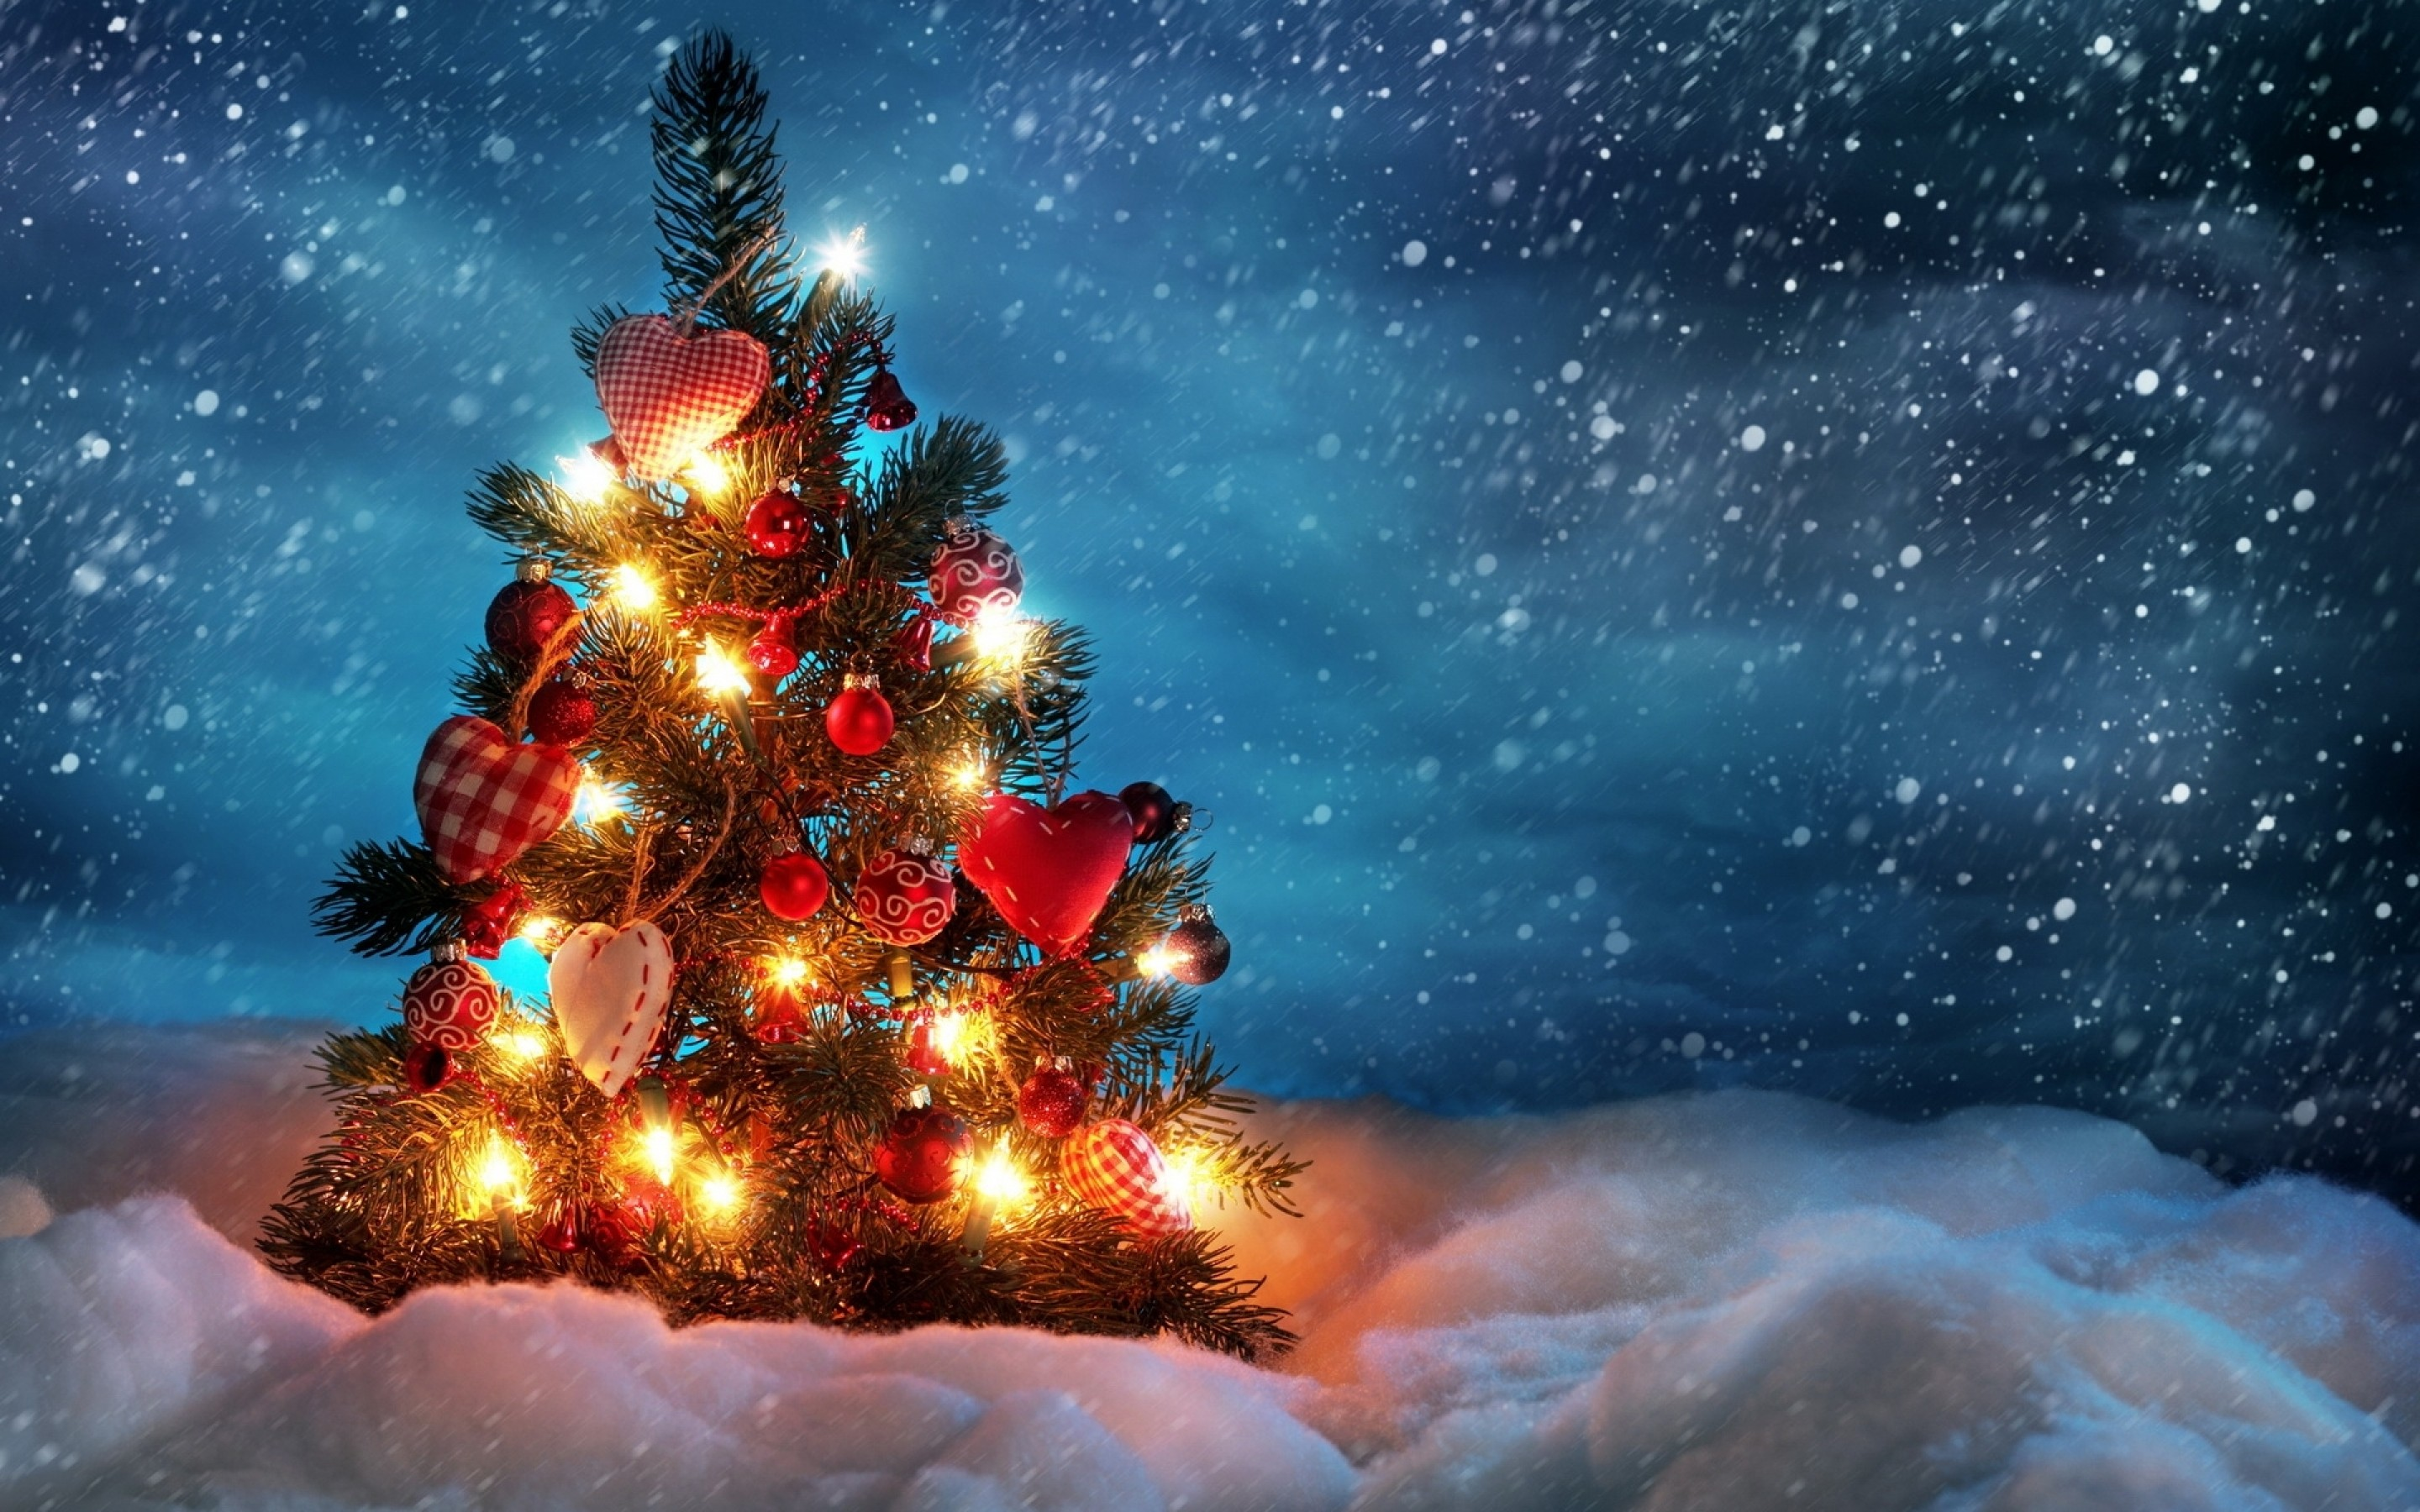 Christmas Images Wallpapers